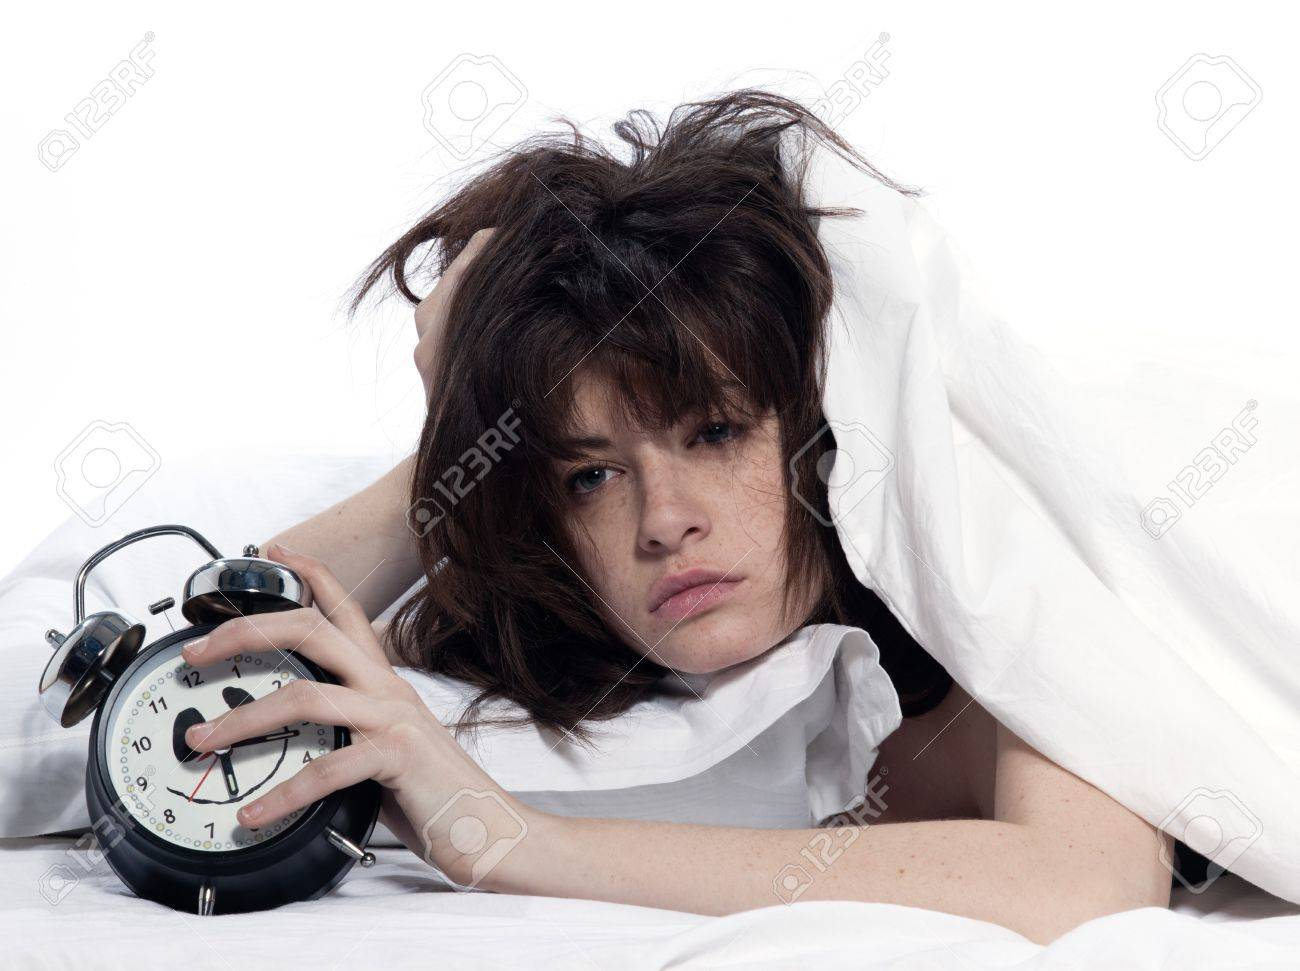 young woman woman in bed awakening tired holding alarm clock on white background - 11752815